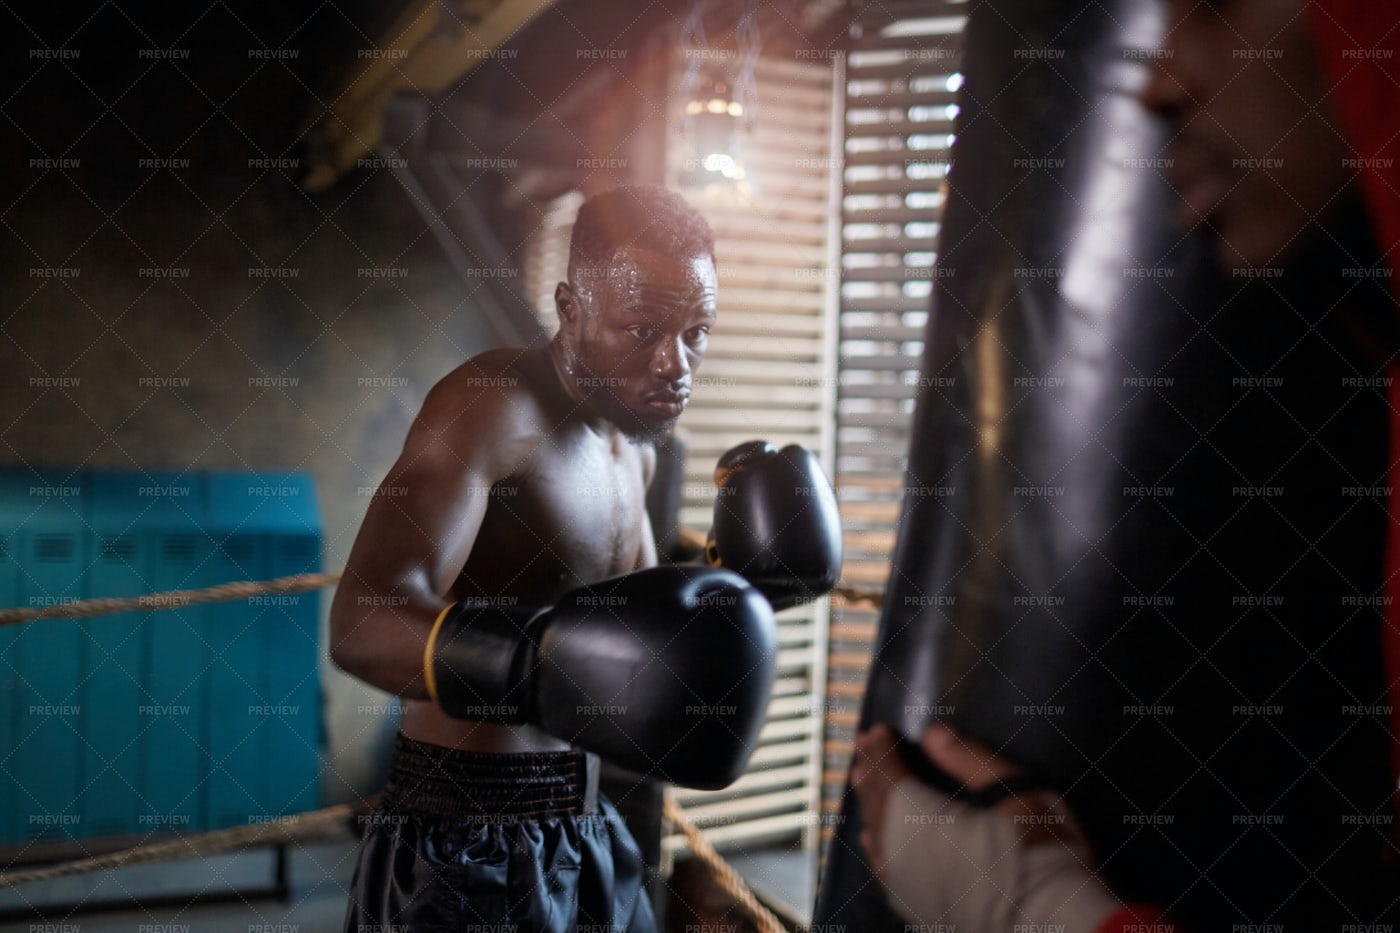 Boxer Training With Punching Bag: Stock Photos